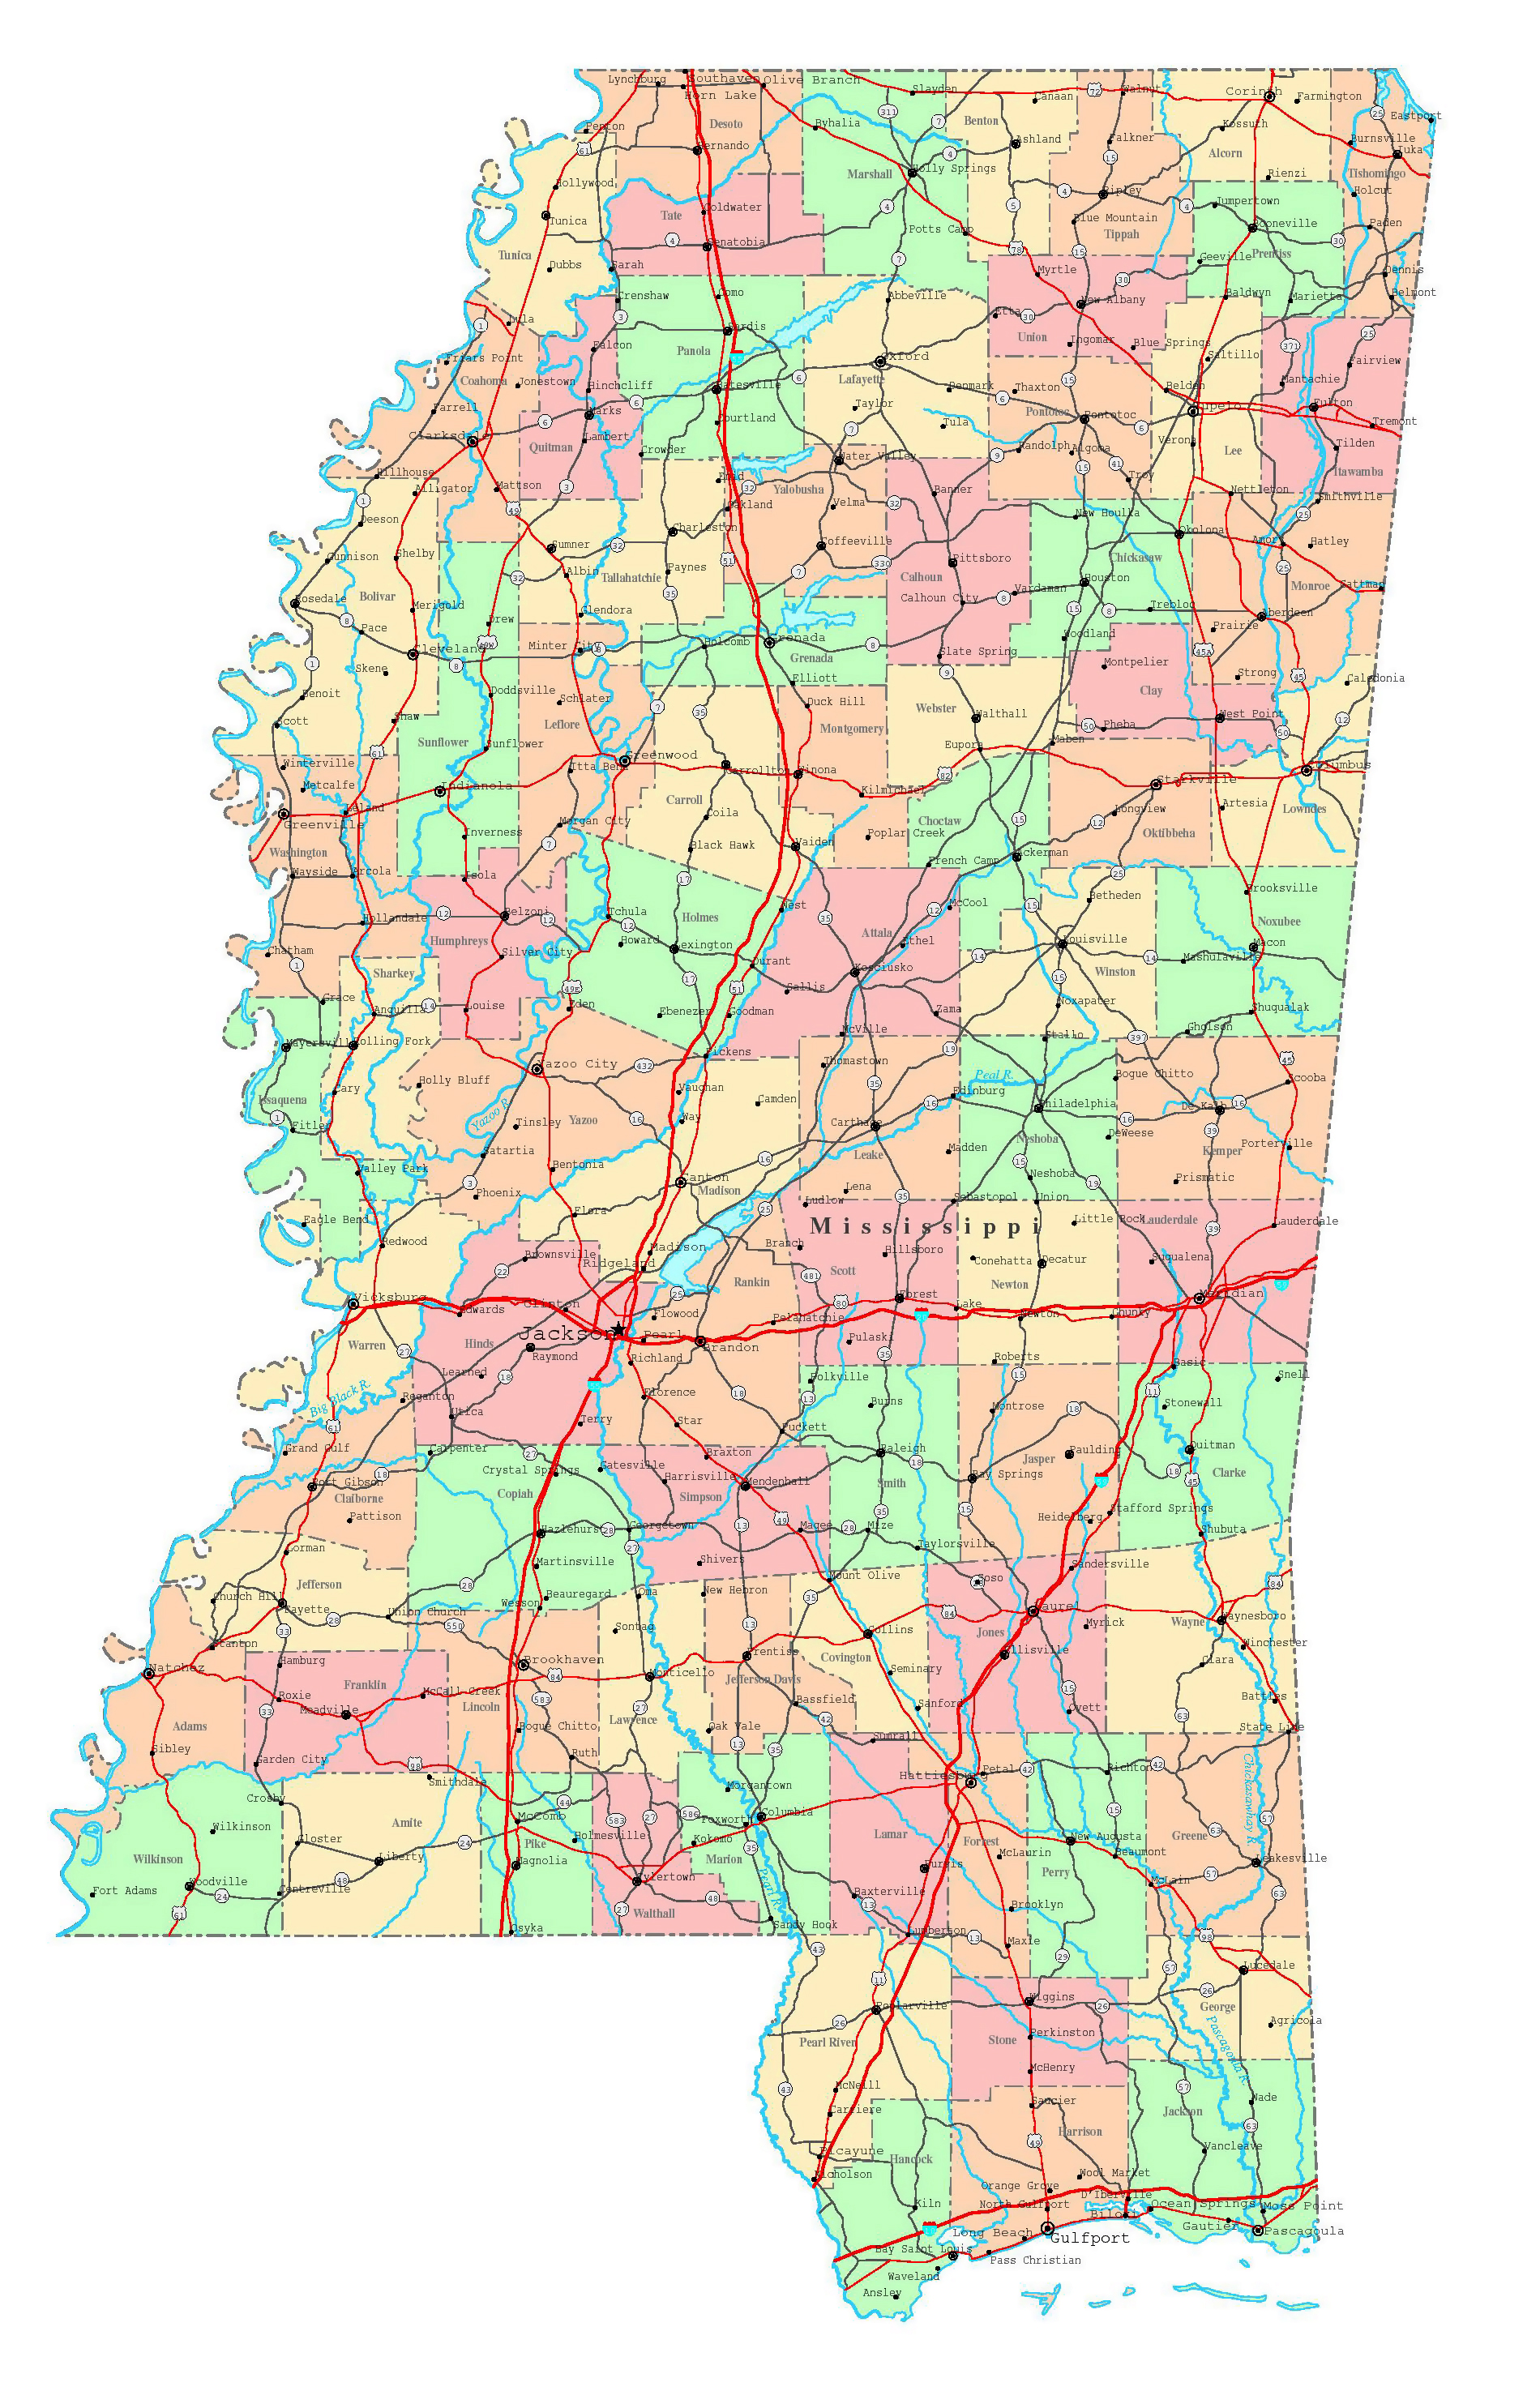 moreover  likewise The Evolution of Mississippi Highways   Back in Time   General in addition Map of State of Mississippi with cities  towns and counties further Mississippi Road Map also Printable Mississippi Maps   State Outline  County  Cities besides maps  Mississippi On A Map further  further Mississippi State Map With Cities And Counties – bonusbag info further 166 best ROAD MAPS OF THE UNITED STATES images on Pinterest   Map of further State Map With Cities Capitals Mississippi – wineandmore info besides Mississippi State Map With Cities And Counties carroll county as well Freedom Summer  Road Map   Jackson Free Press   Jackson  MS additionally Maps Map With Cities The Specific Towns  munities And Counties We besides Mississippi State Map with Cities and towns Traveling Map further North Map Mississippi State Cities – weggelopen info. on mississippi state map cities